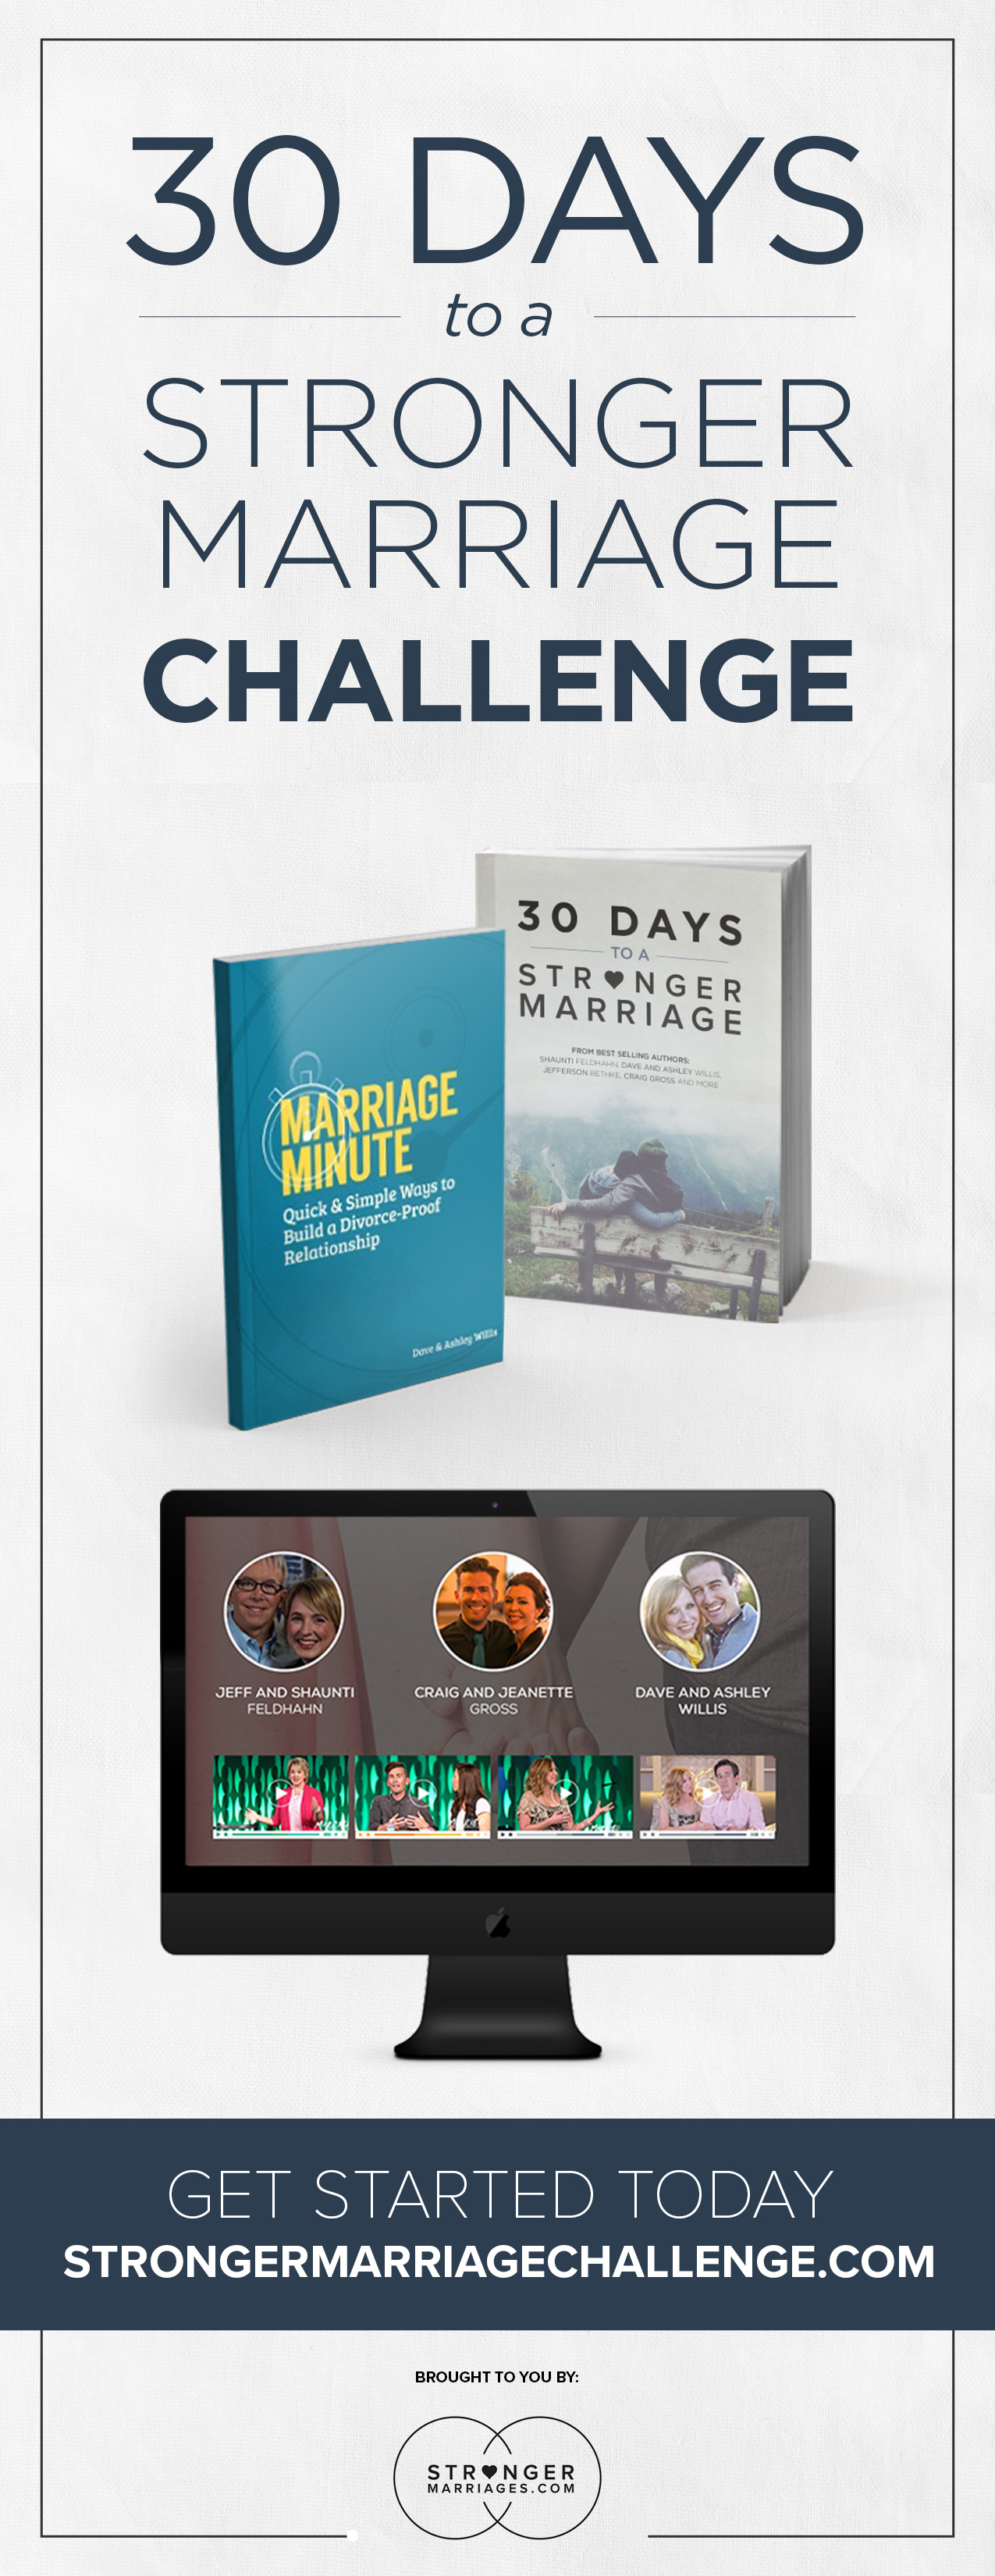 30 Days to a Stronger Marriage Challenge Bulletin Insert (JPG)